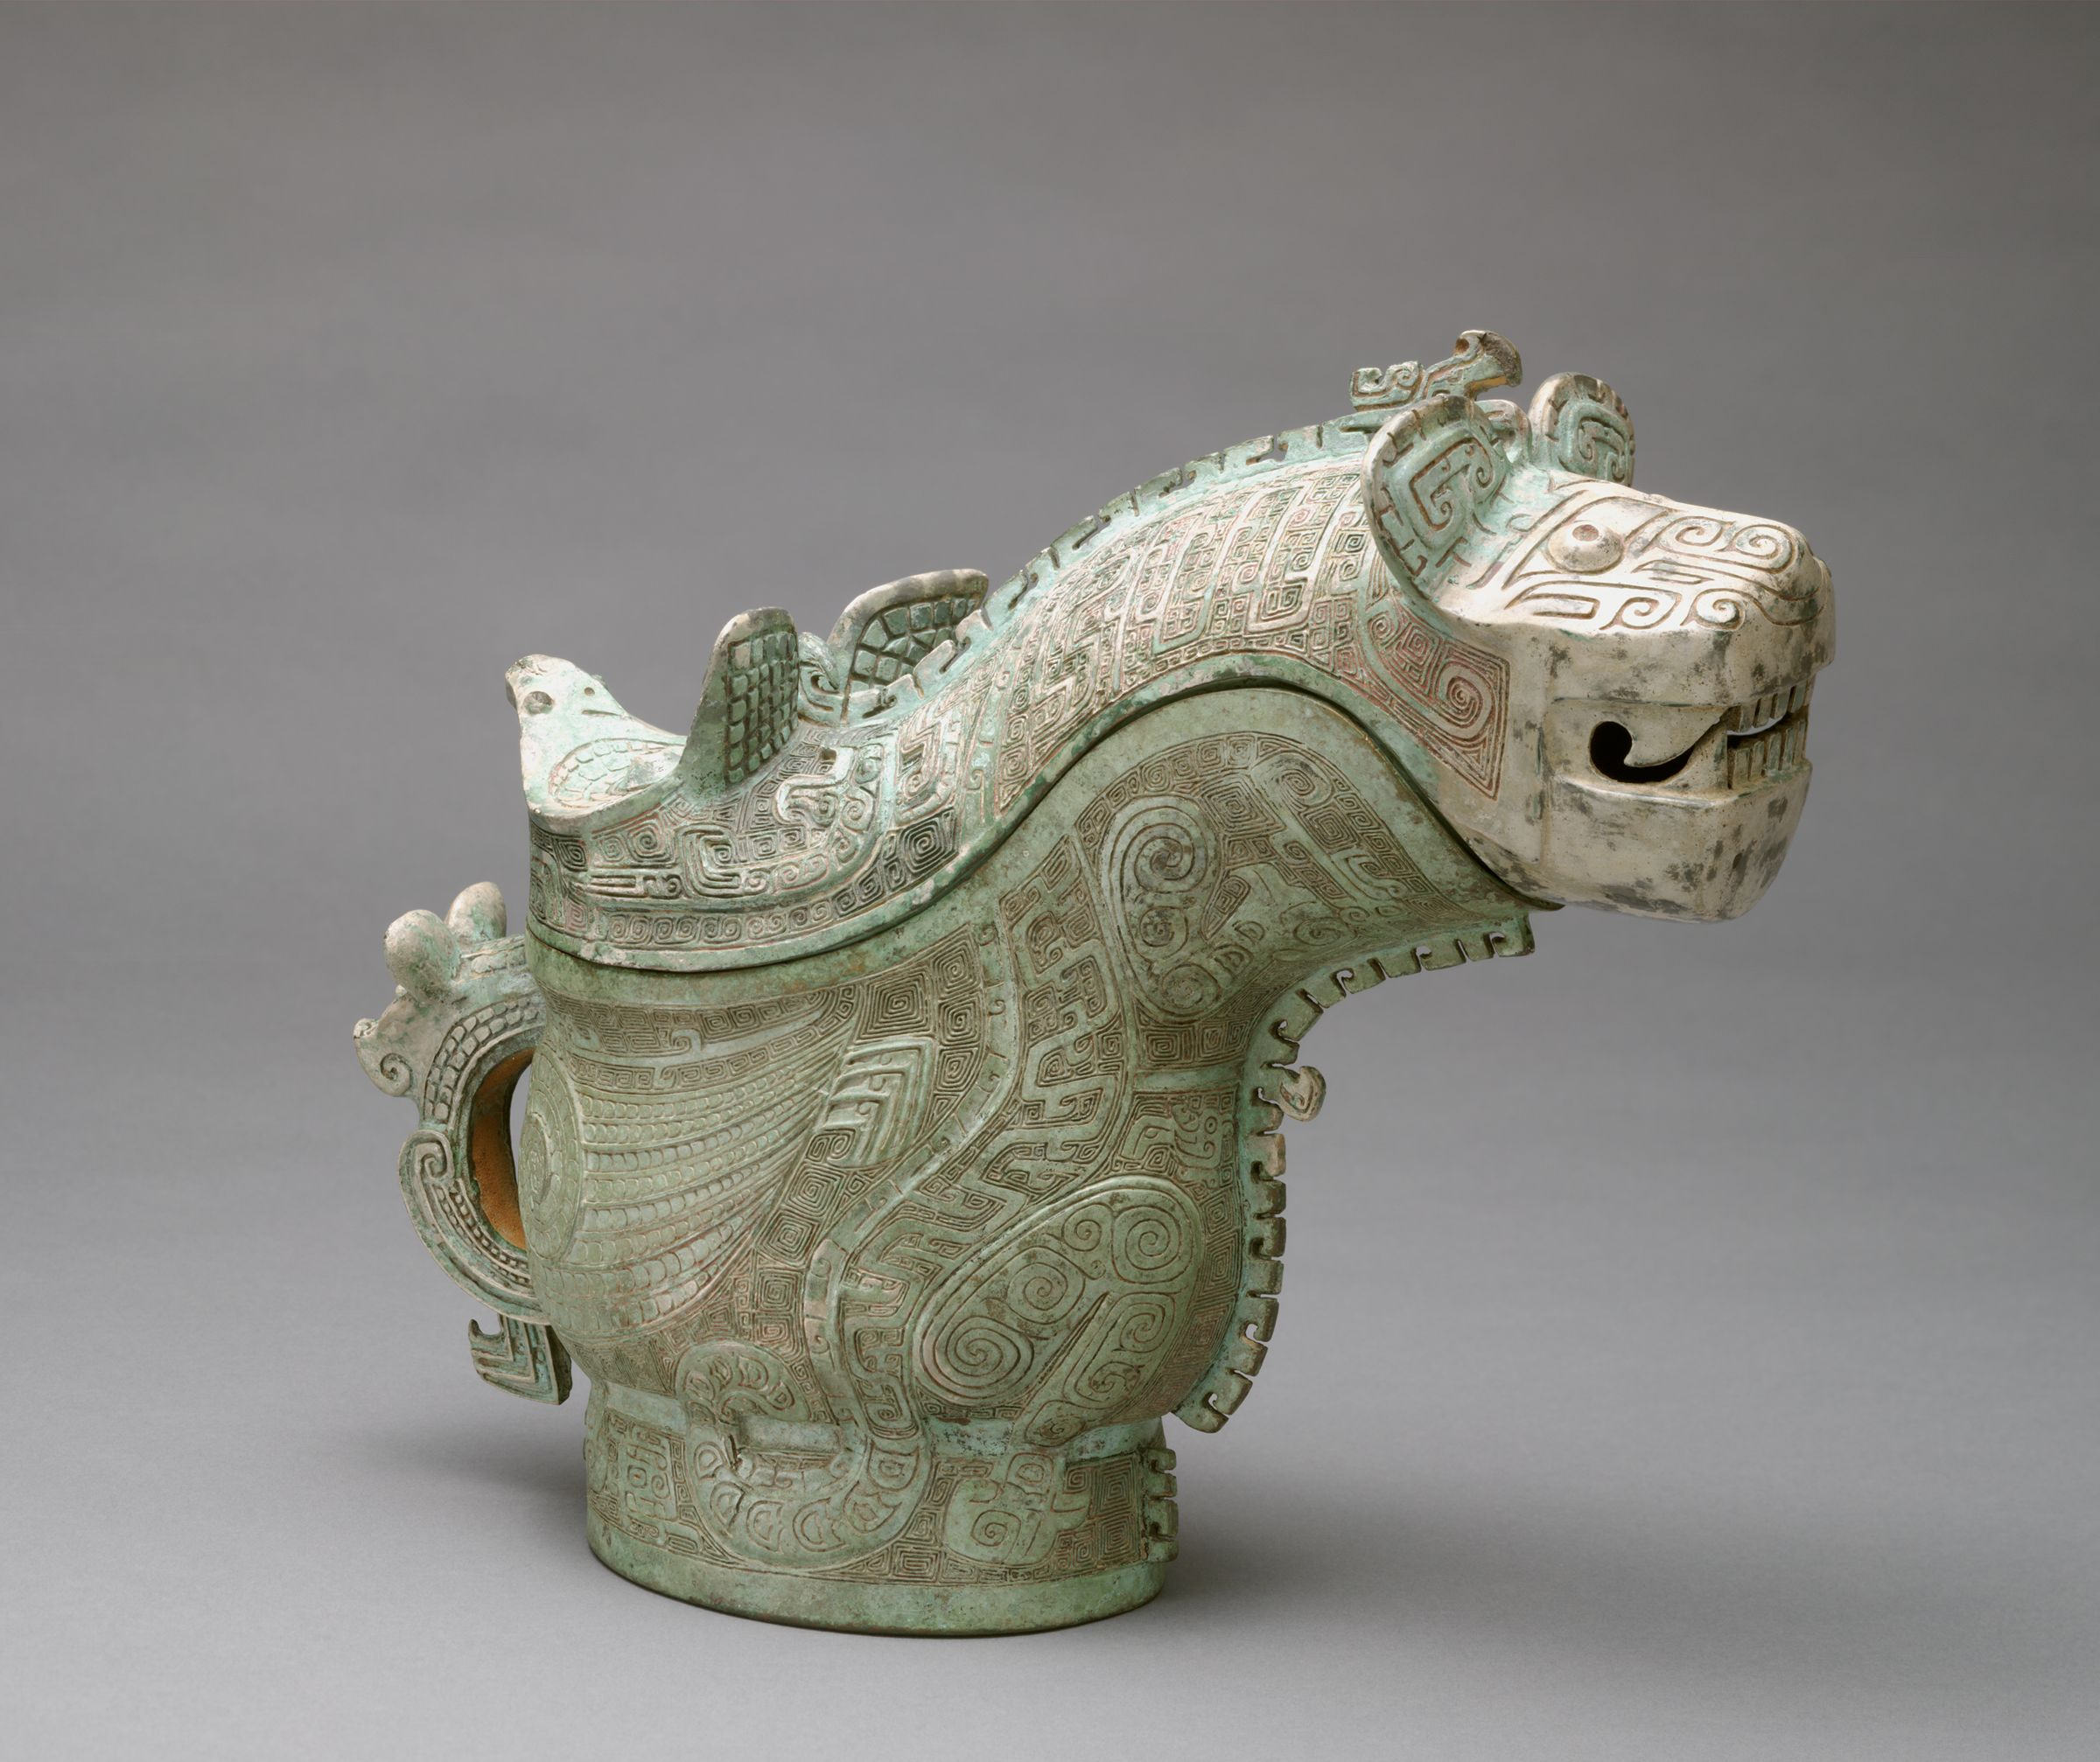 Covered Ritual Wine Pouring Vessel (Guang) With Tiger And Owl Decor